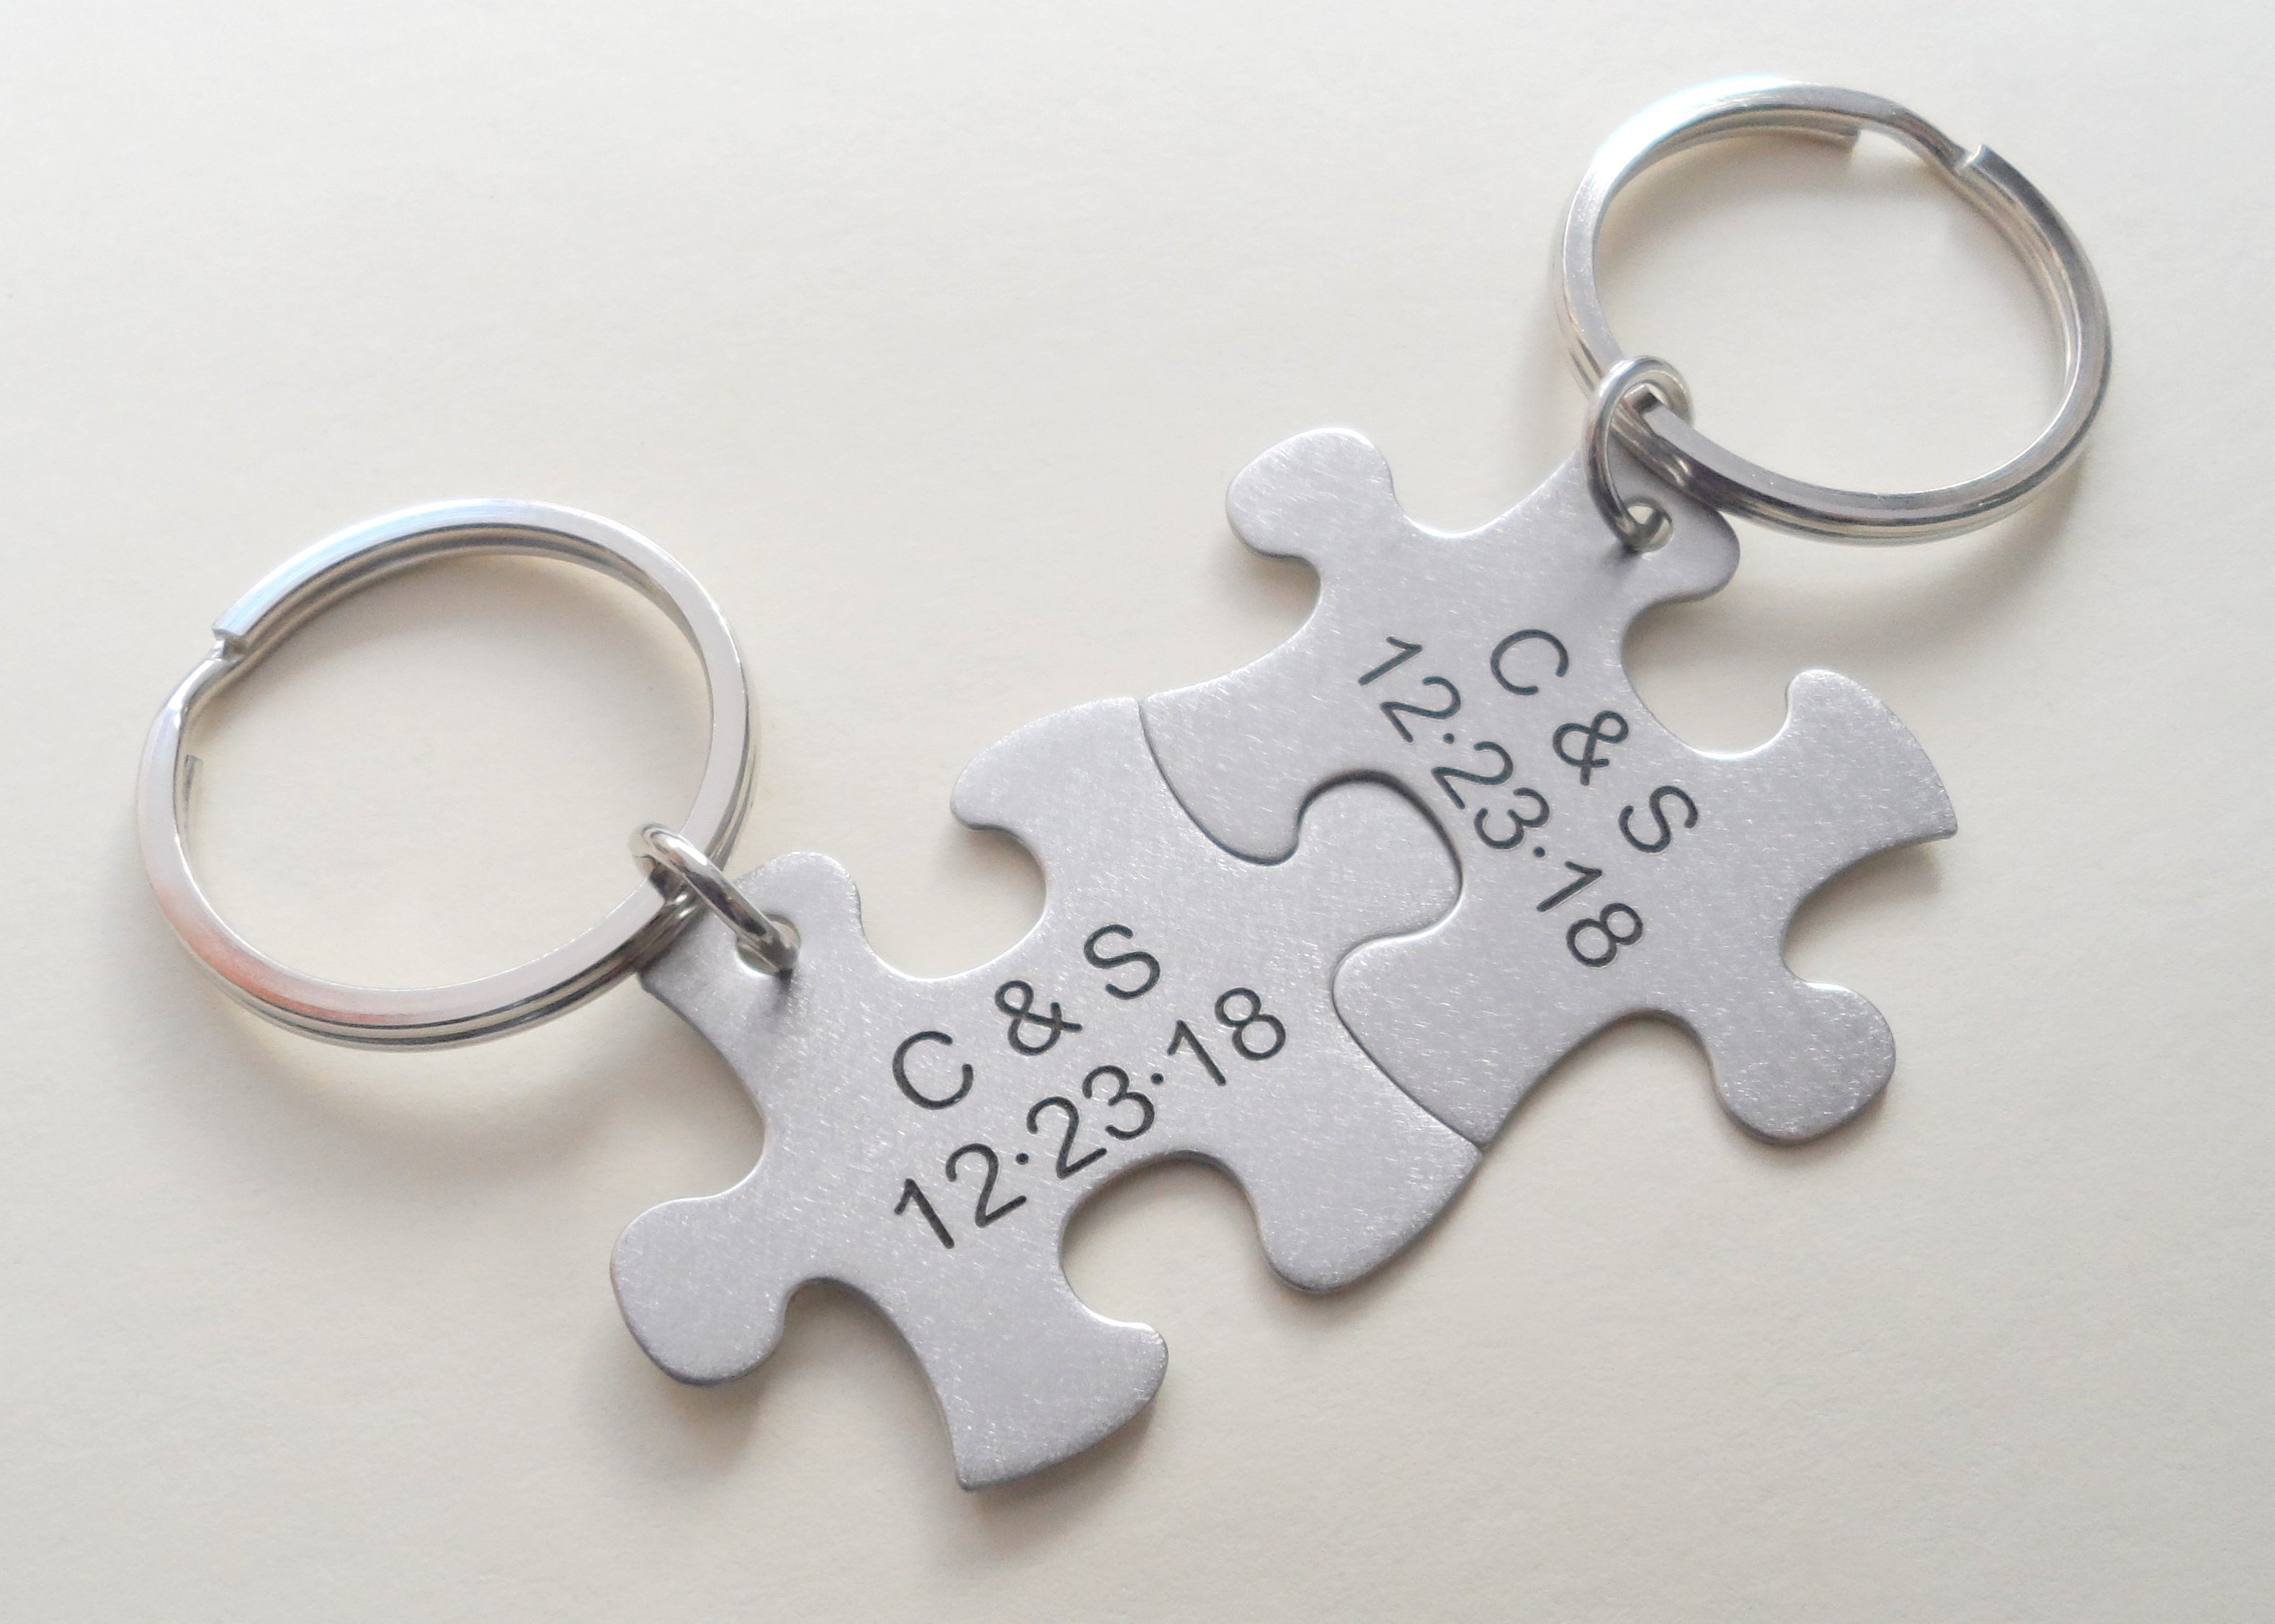 d775183369 Custom Engraved Matching Steel Puzzle Keychains With Initials, Couples  Keychains, Best Friend Gift